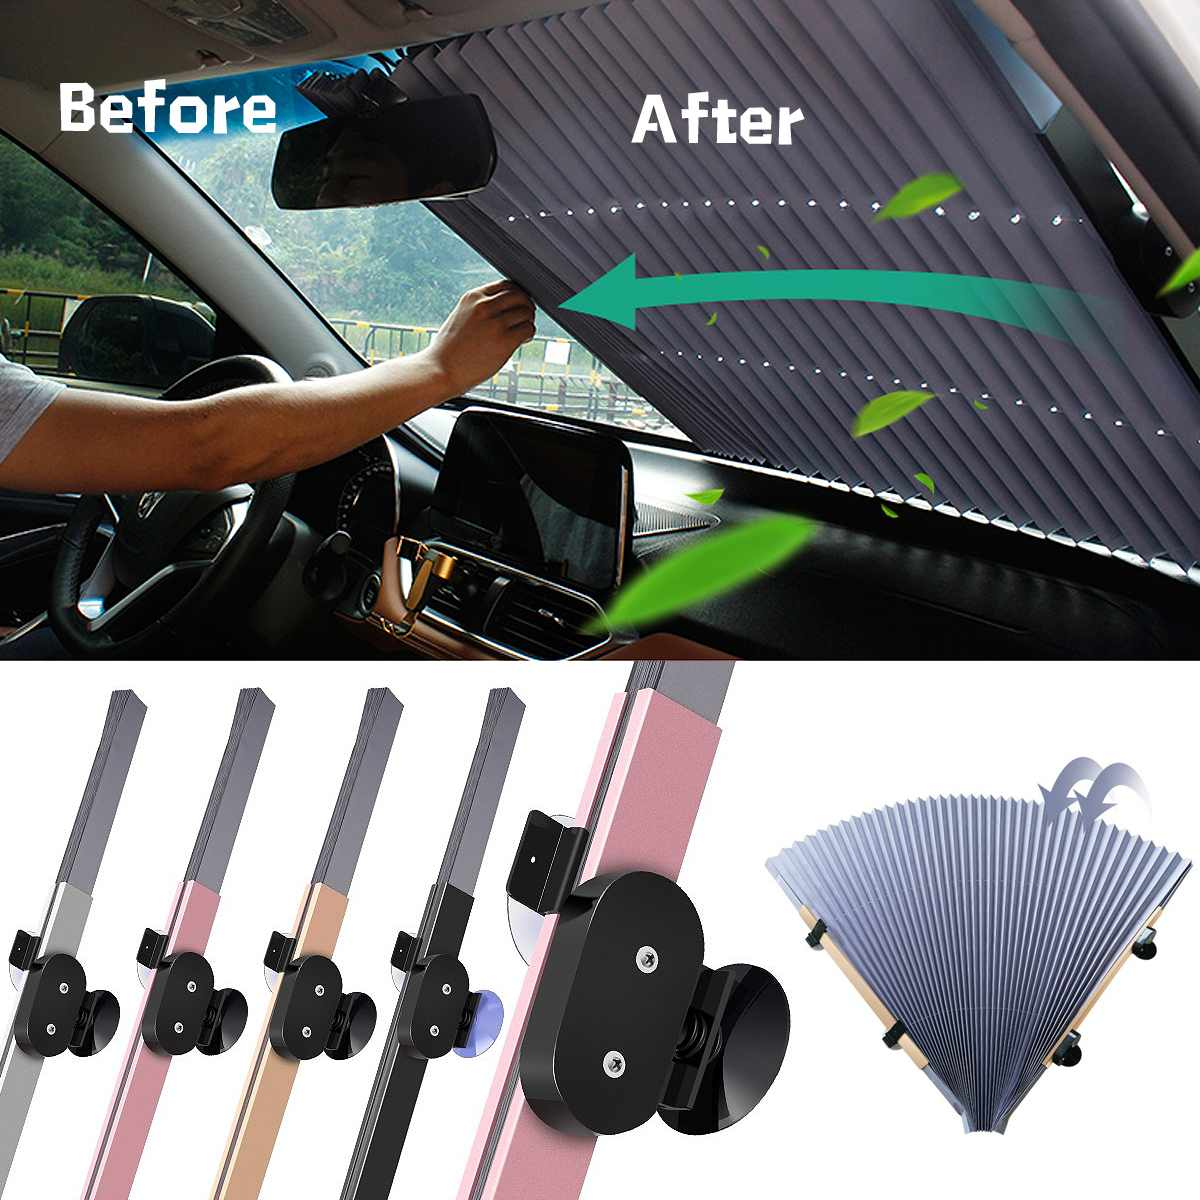 70*155CM Car Retractable Windshield Sun Shade Block Sunshade Cover Front/Rear Window Foil Curtain for Solar UV Protect Sunshades70*155CM Car Retractable Windshield Sun Shade Block Sunshade Cover Front/Rear Window Foil Curtain for Solar UV Protect Sunshades